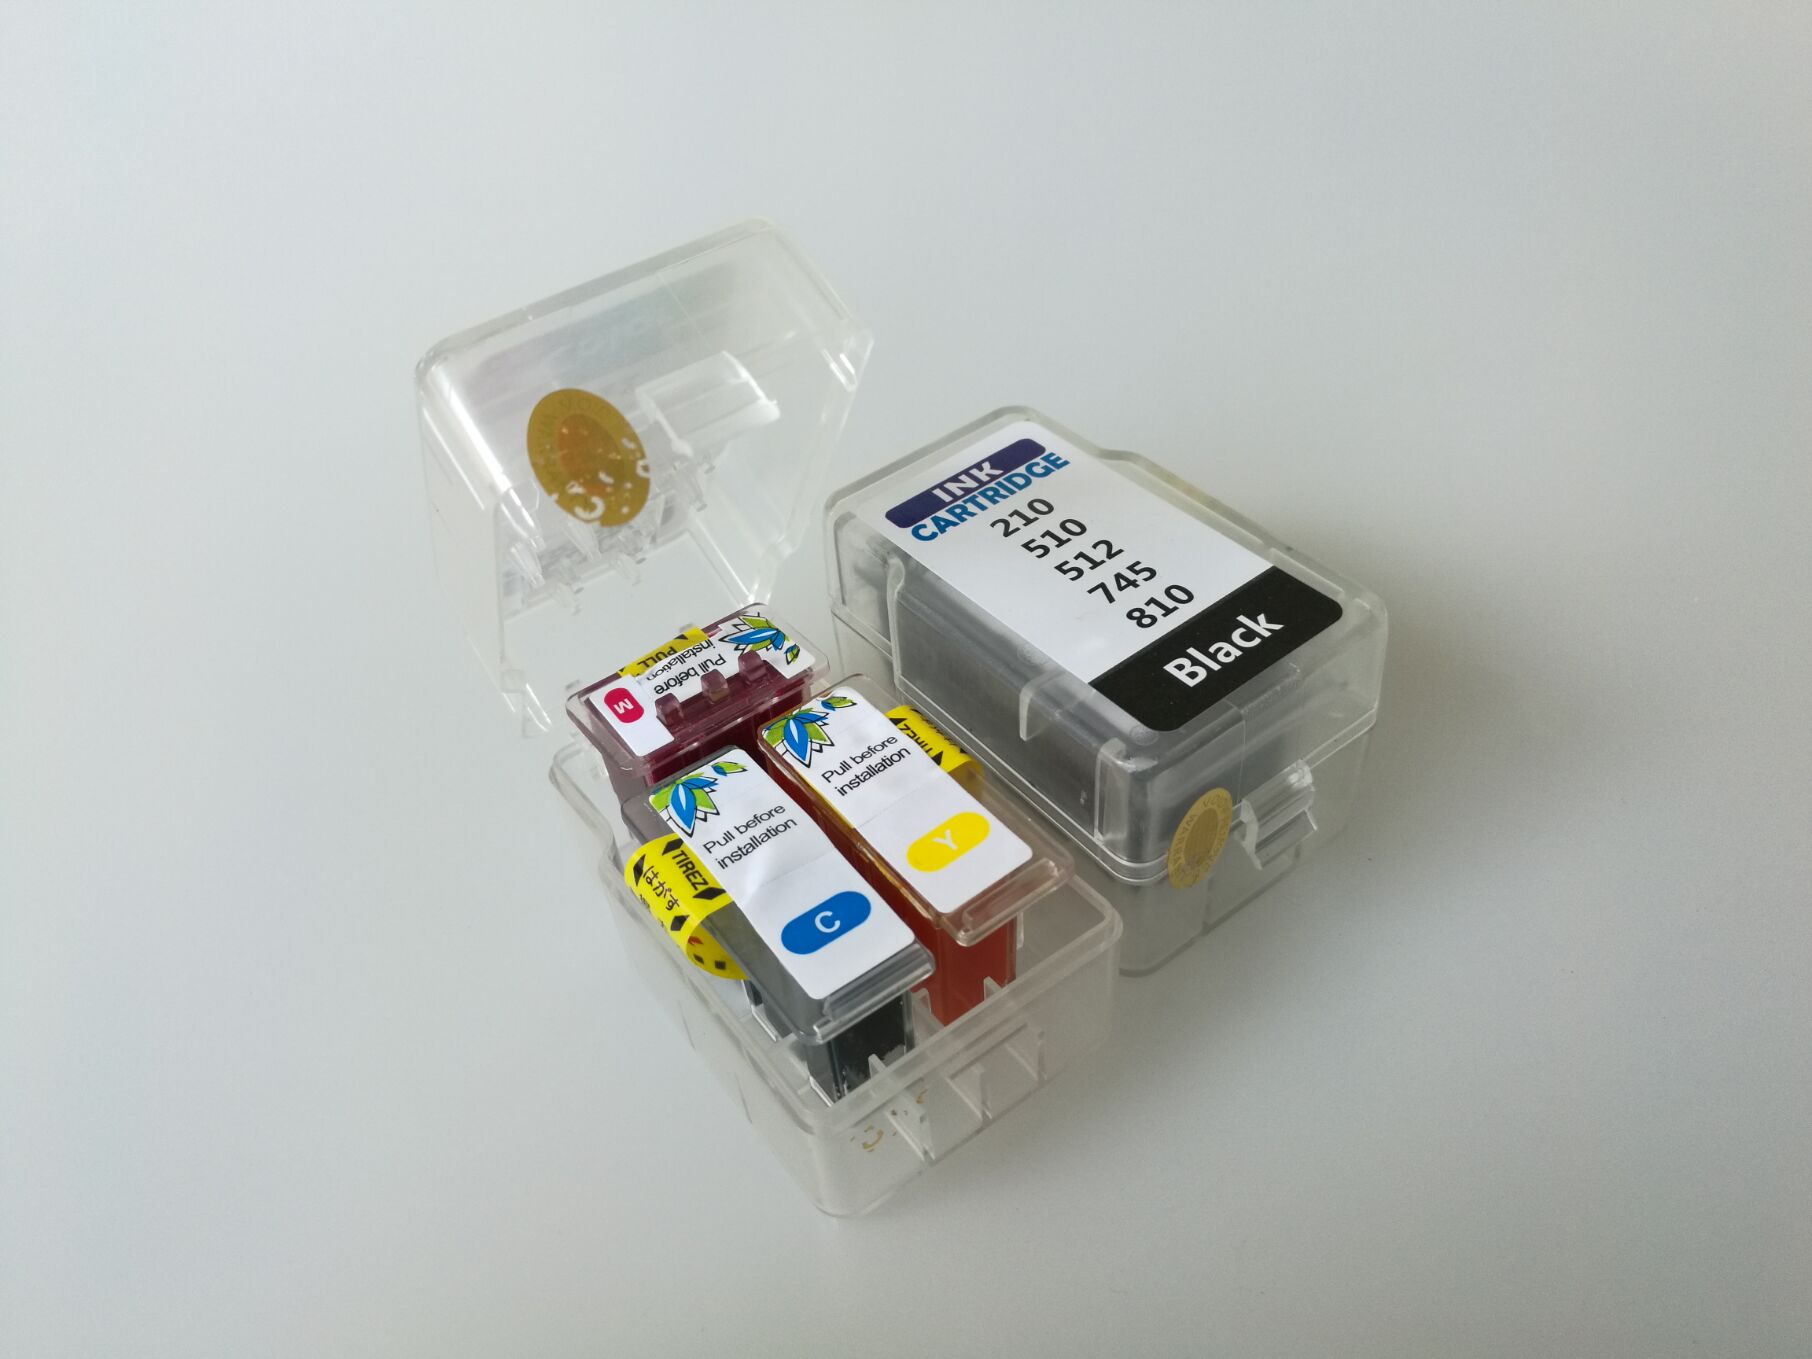 Canon smart cartridge